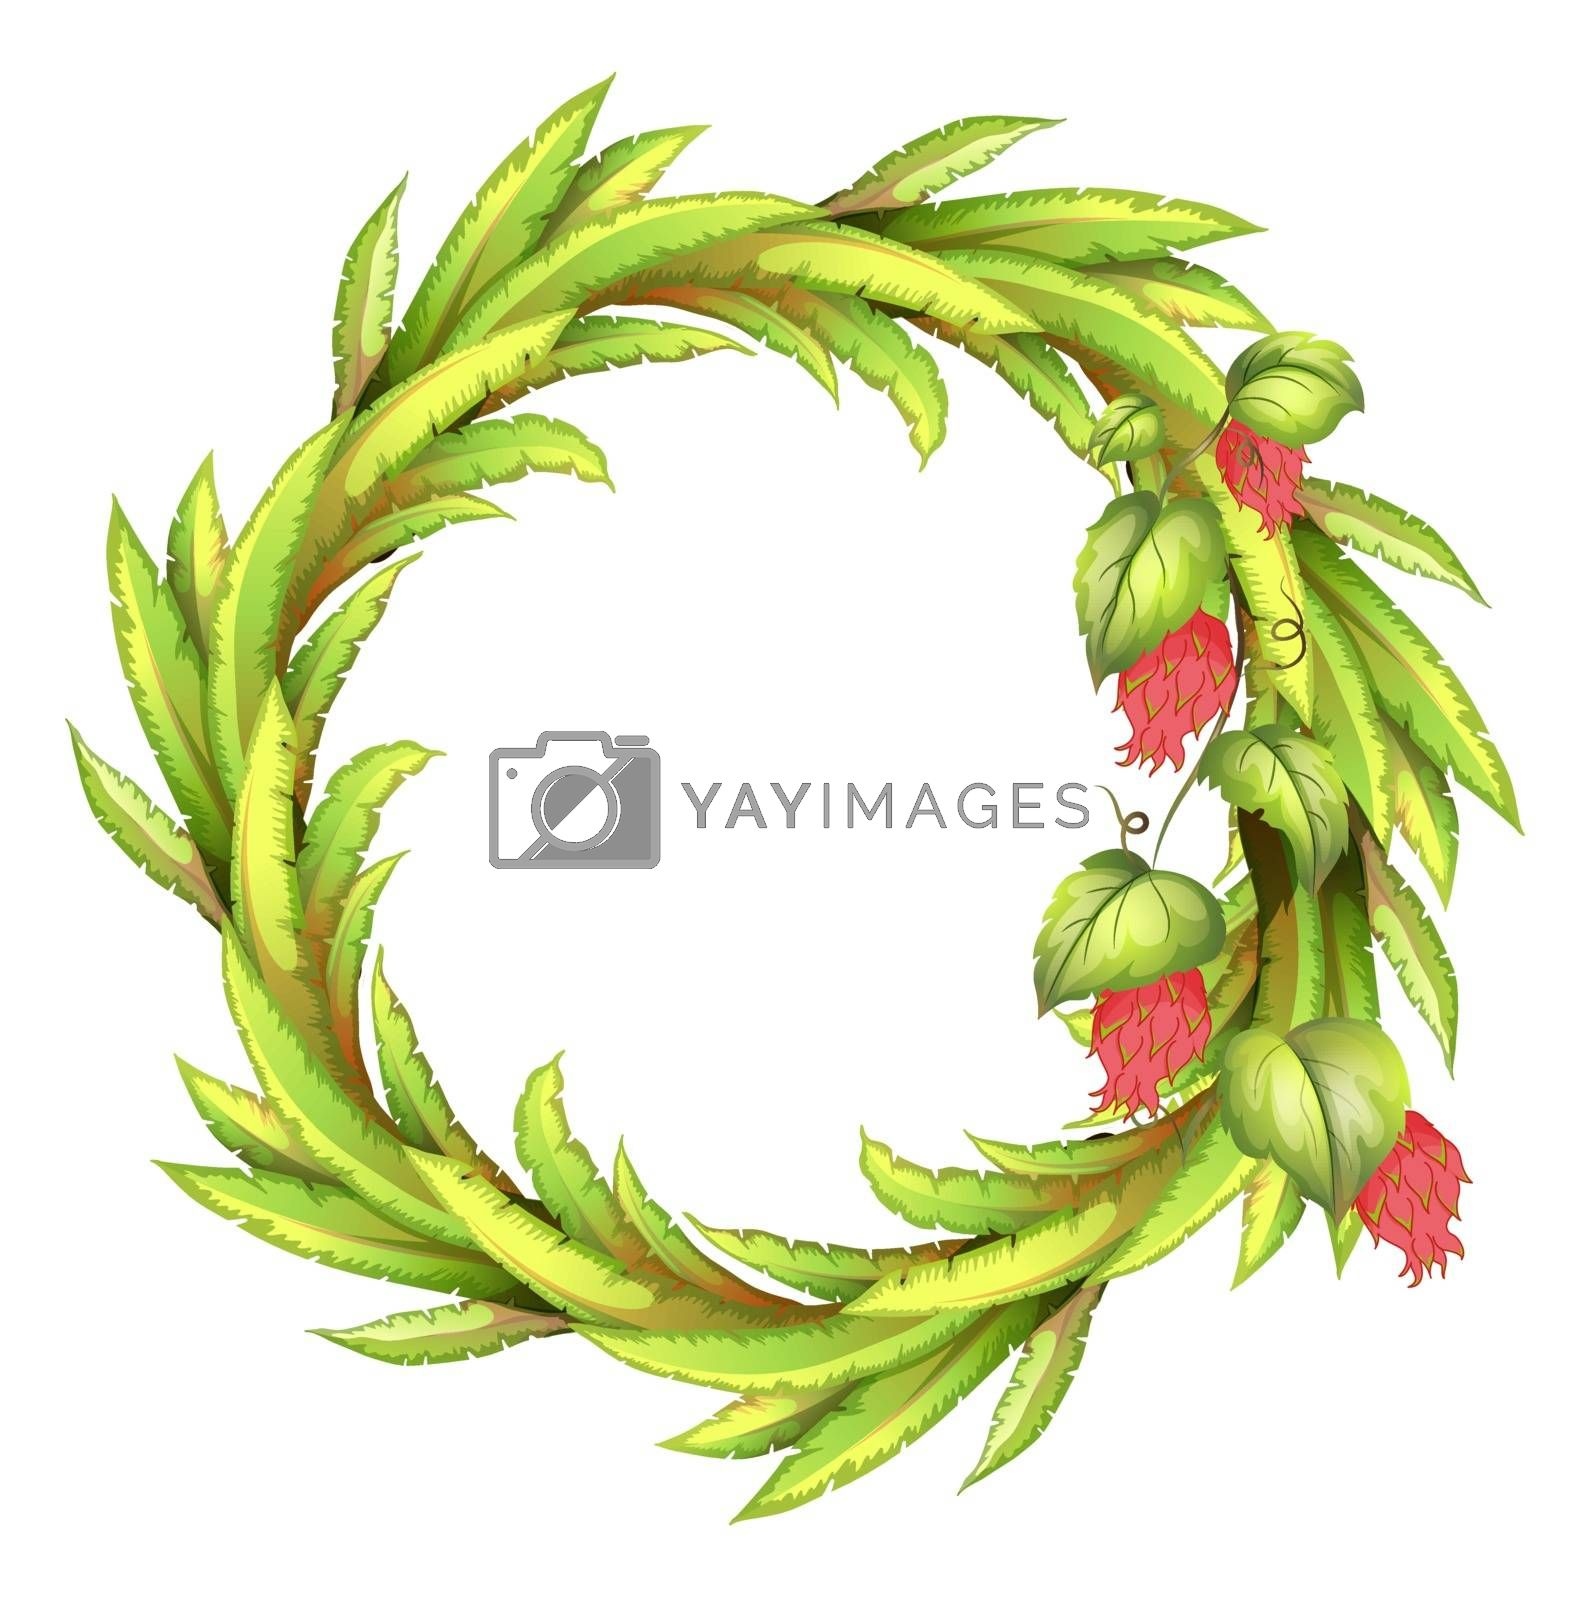 Illustration of a round border made of long leaves on a white background